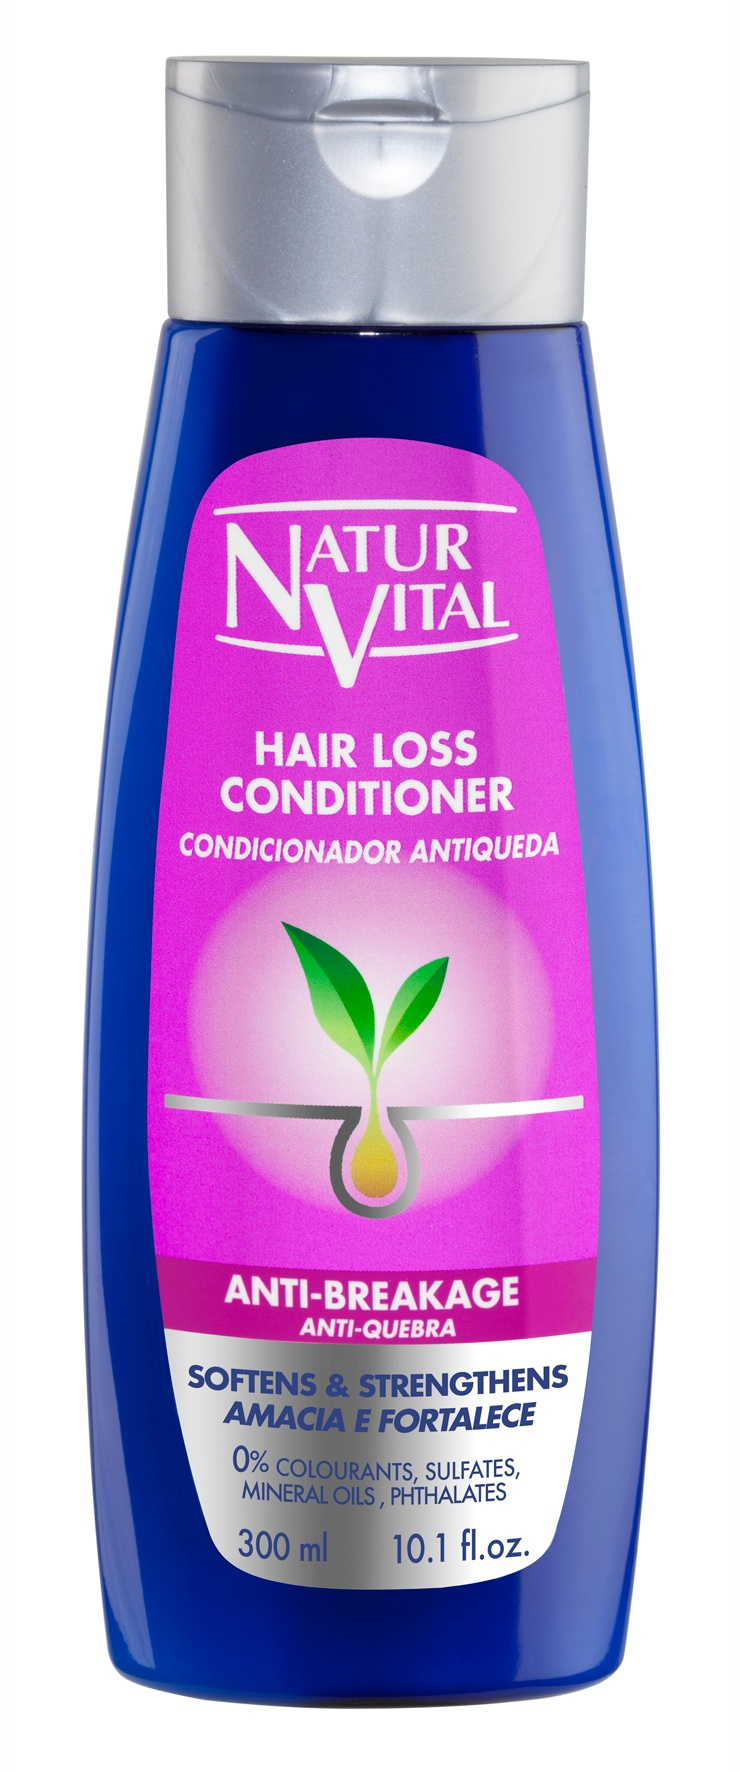 hair loss conditioner 300 ml. 2014